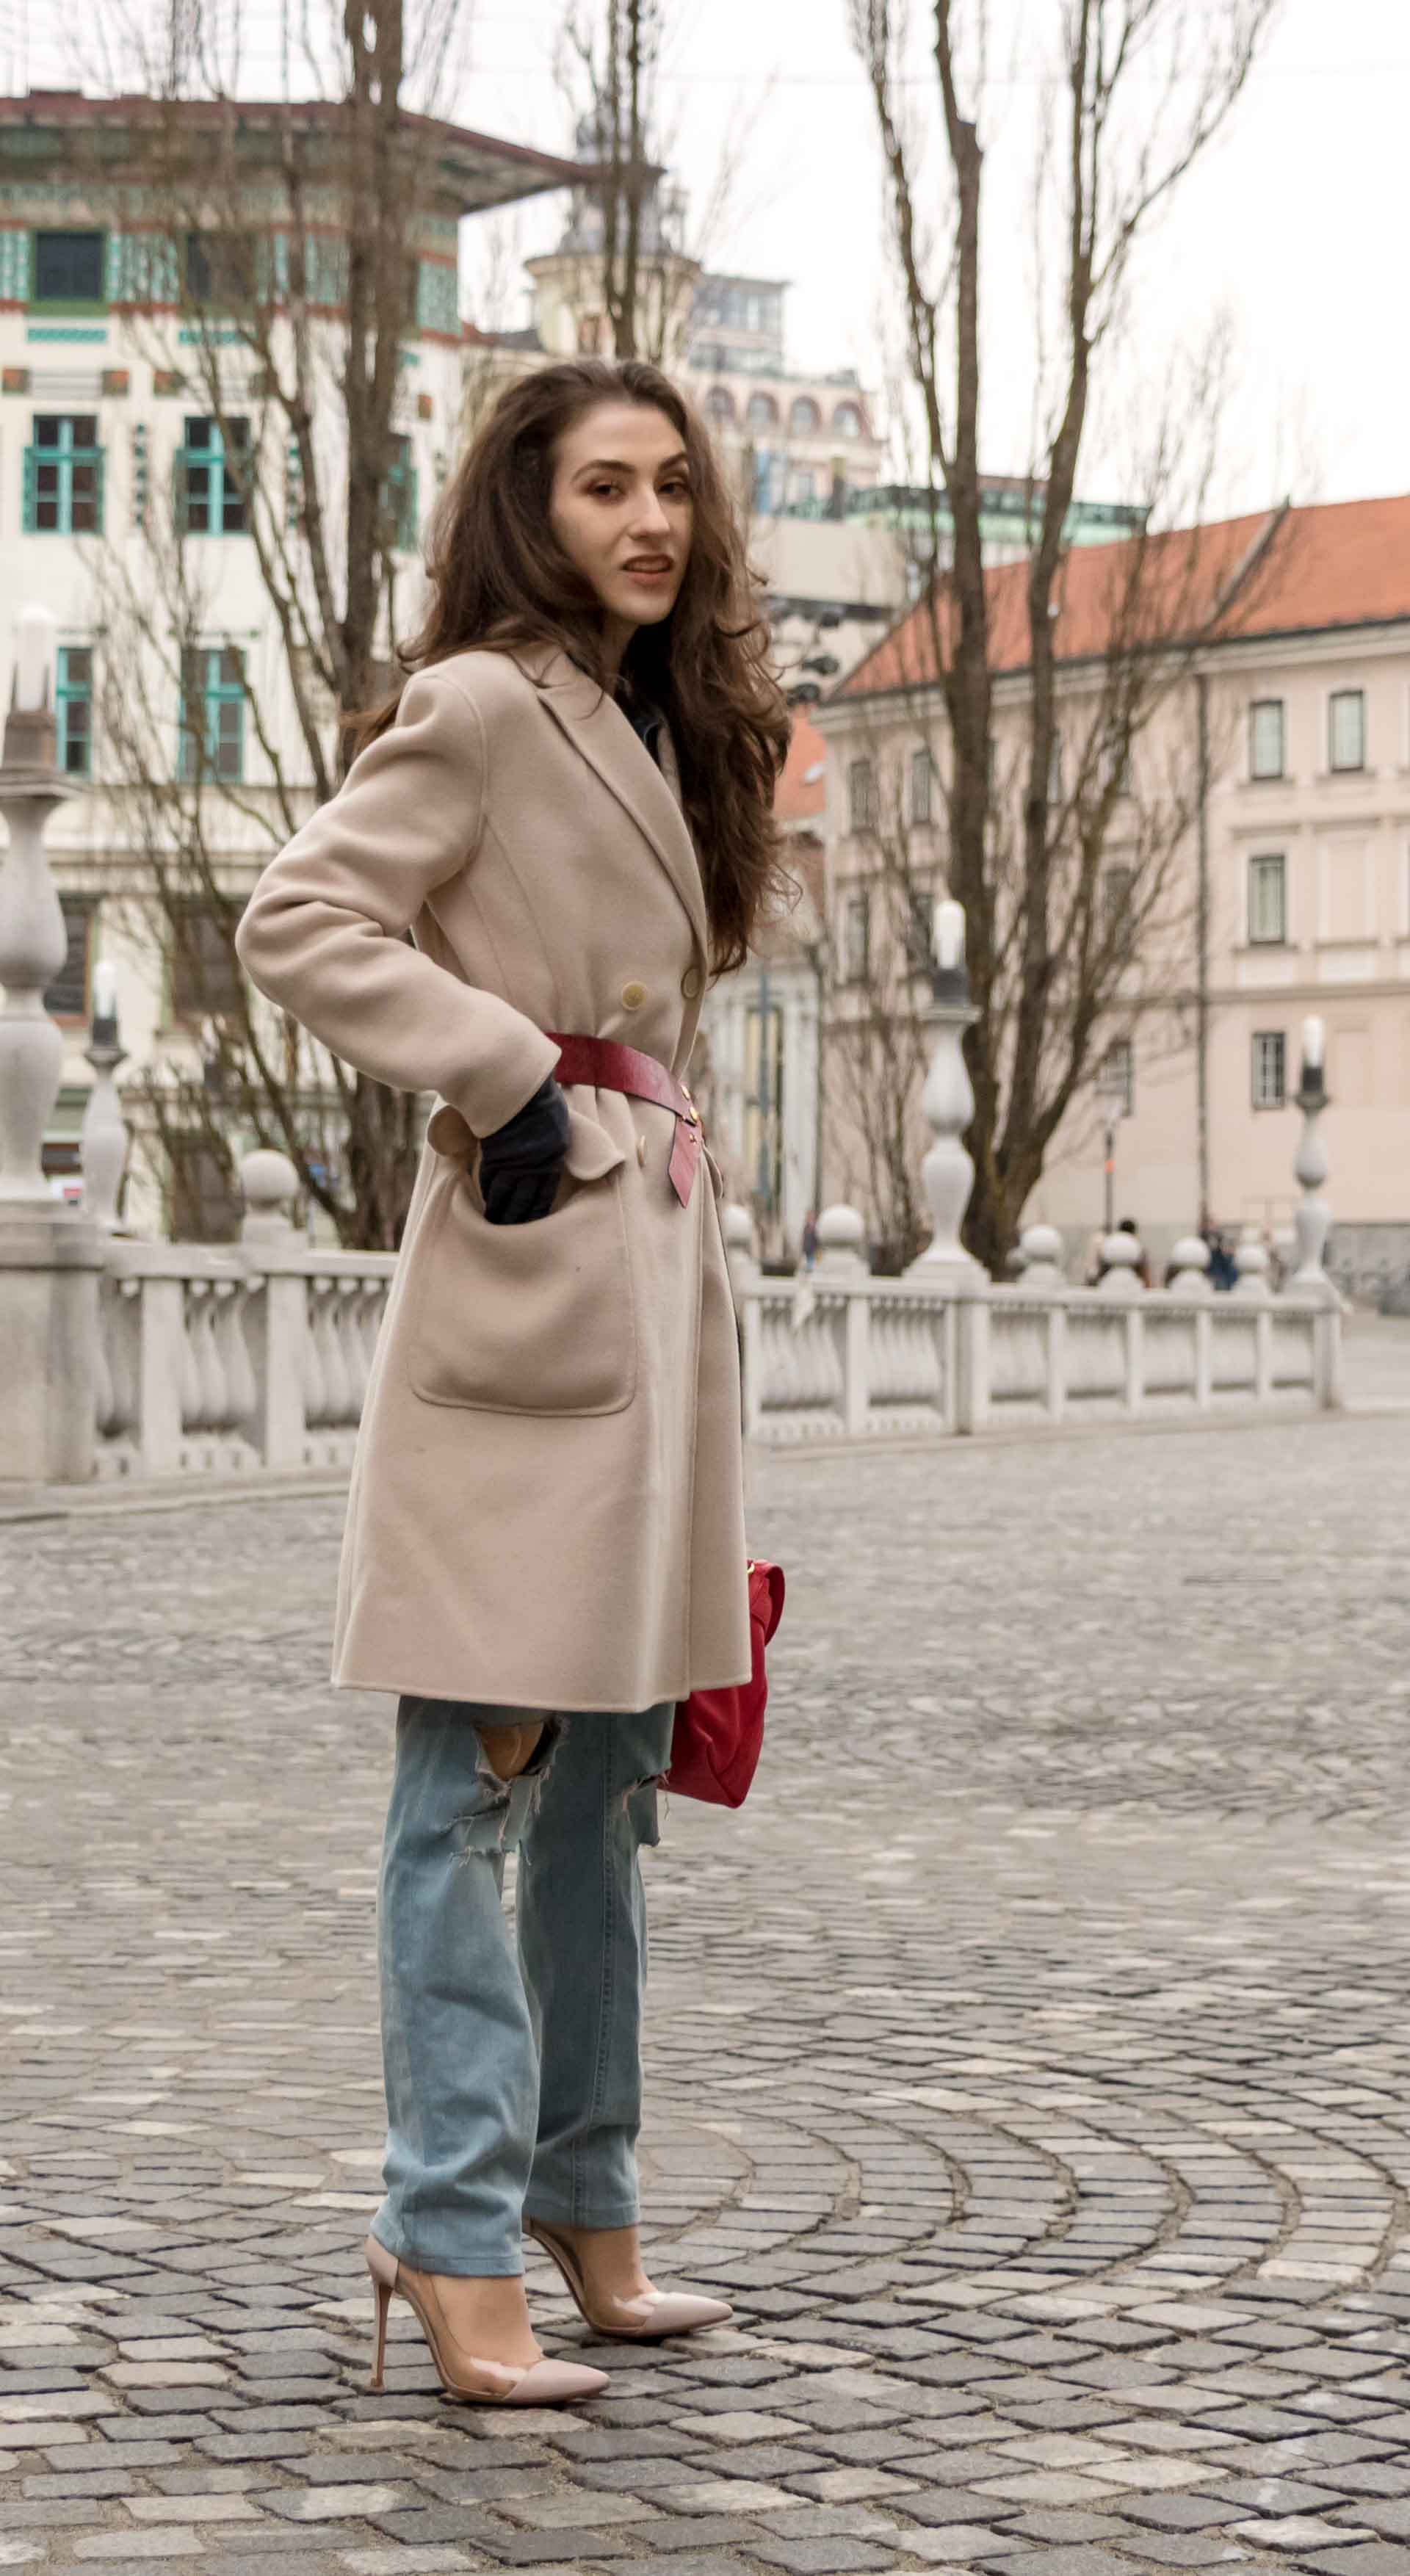 Fashion Blogger Veronika Lipar of Brunette from Wall Street wearing ripped blue Levi's jeans, off-white double breasted Weekend Maxmara coat, red dangling belt, blush Gianvito Rossi plexi pumps, See by Chloe pink top handle bag, blue leather putting hand in the coat's pocket